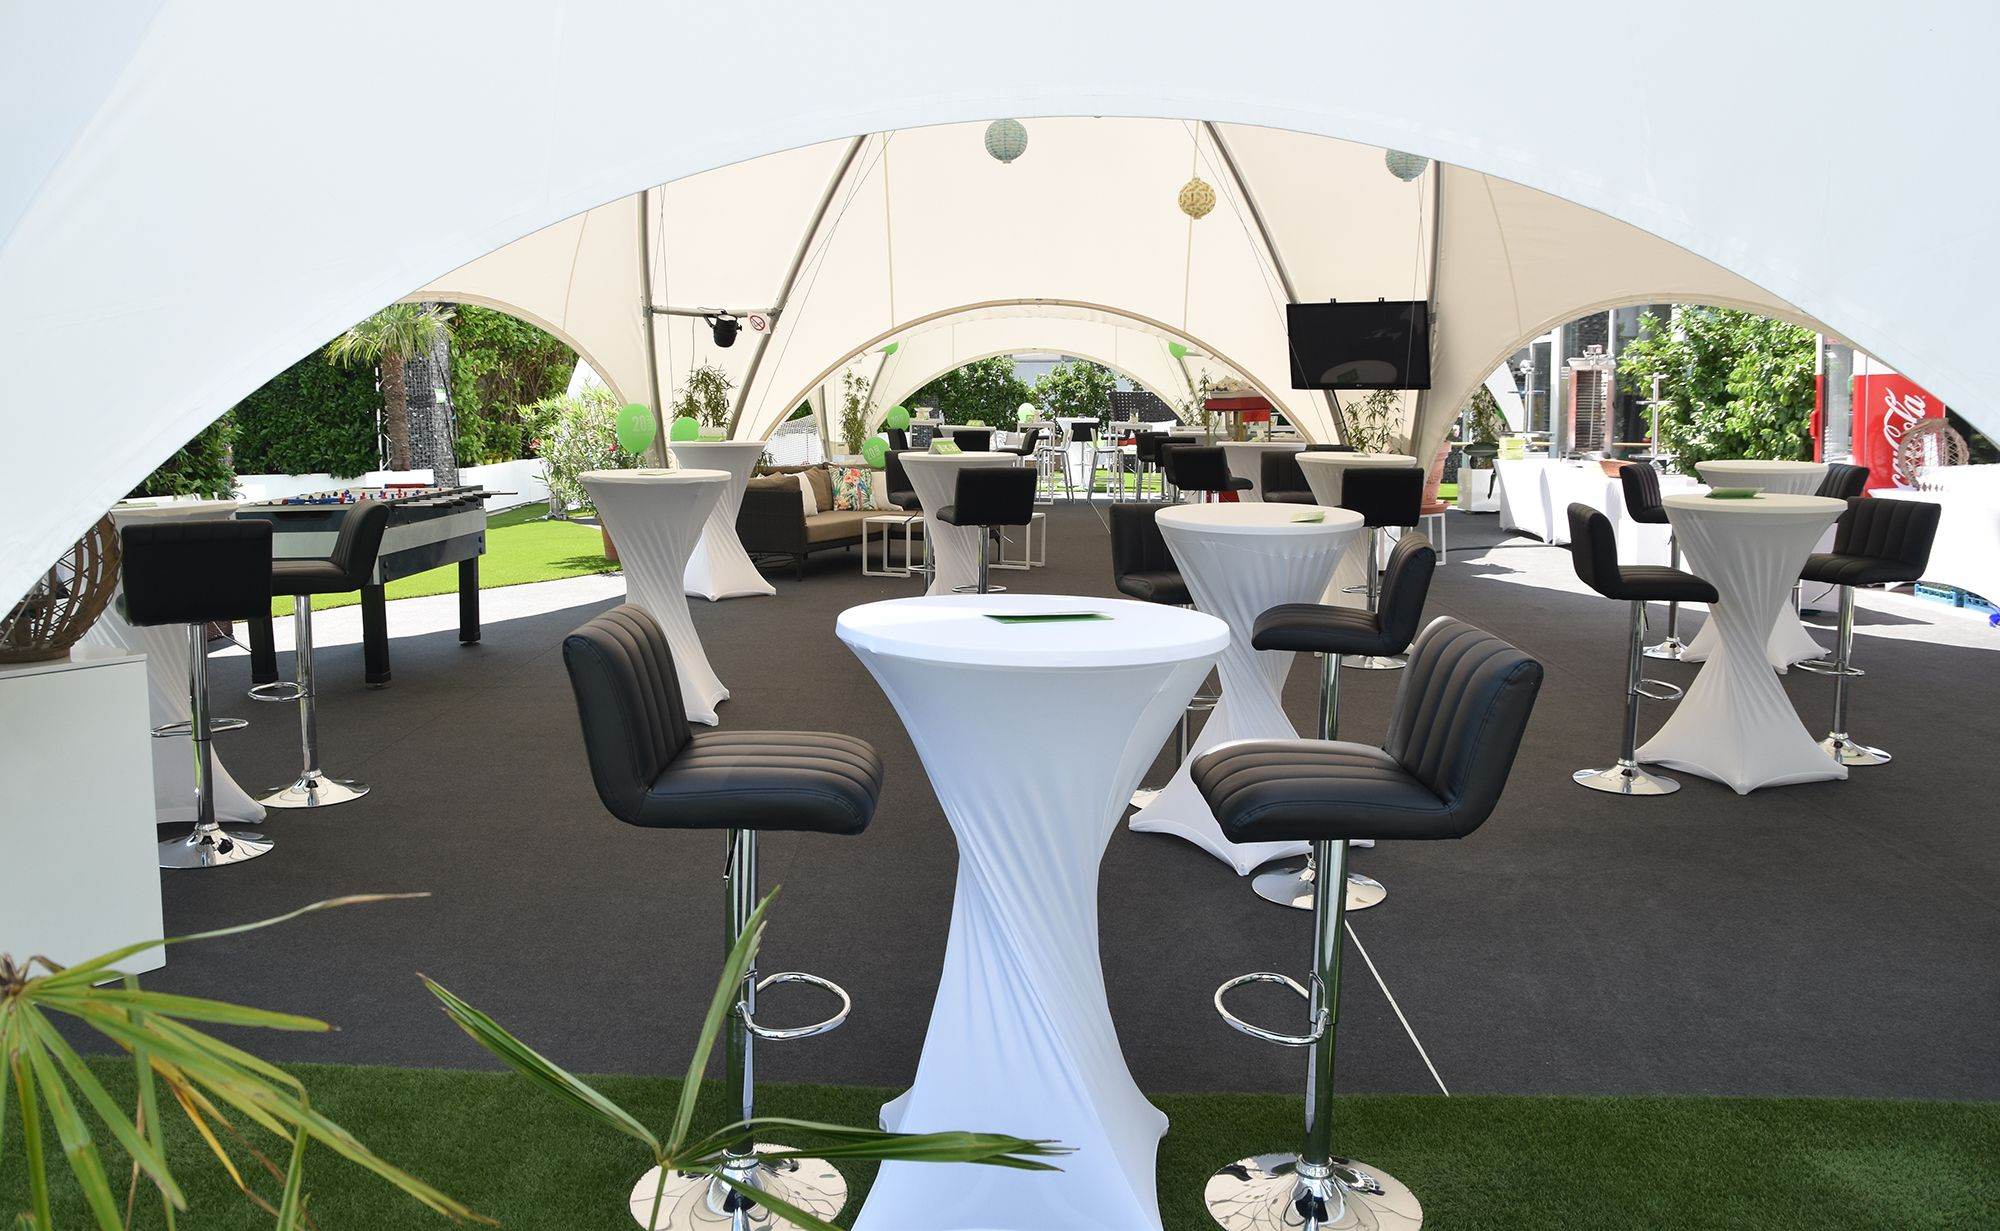 bild_background_outdoor_garten_eventgarten_outdoorbereich_8_starlite_eventhall_eventlocation_eventlokal_event_hall_location_lokal_venue_rapperswil_jona_zuerichsee